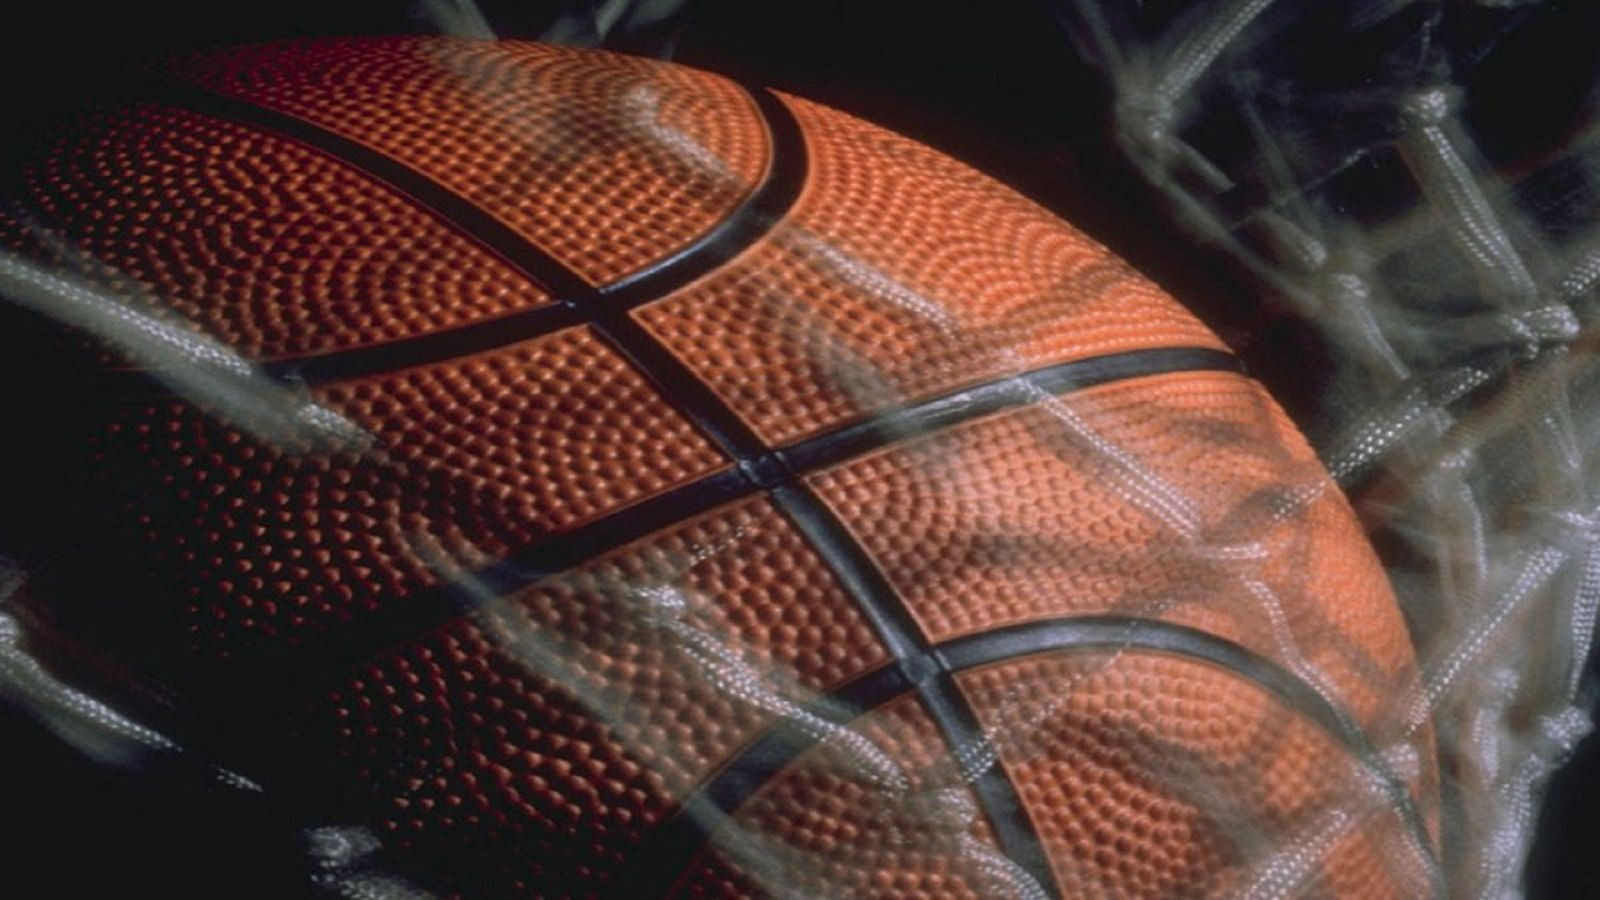 Basketball wallpapers cool widescreen backgrounds